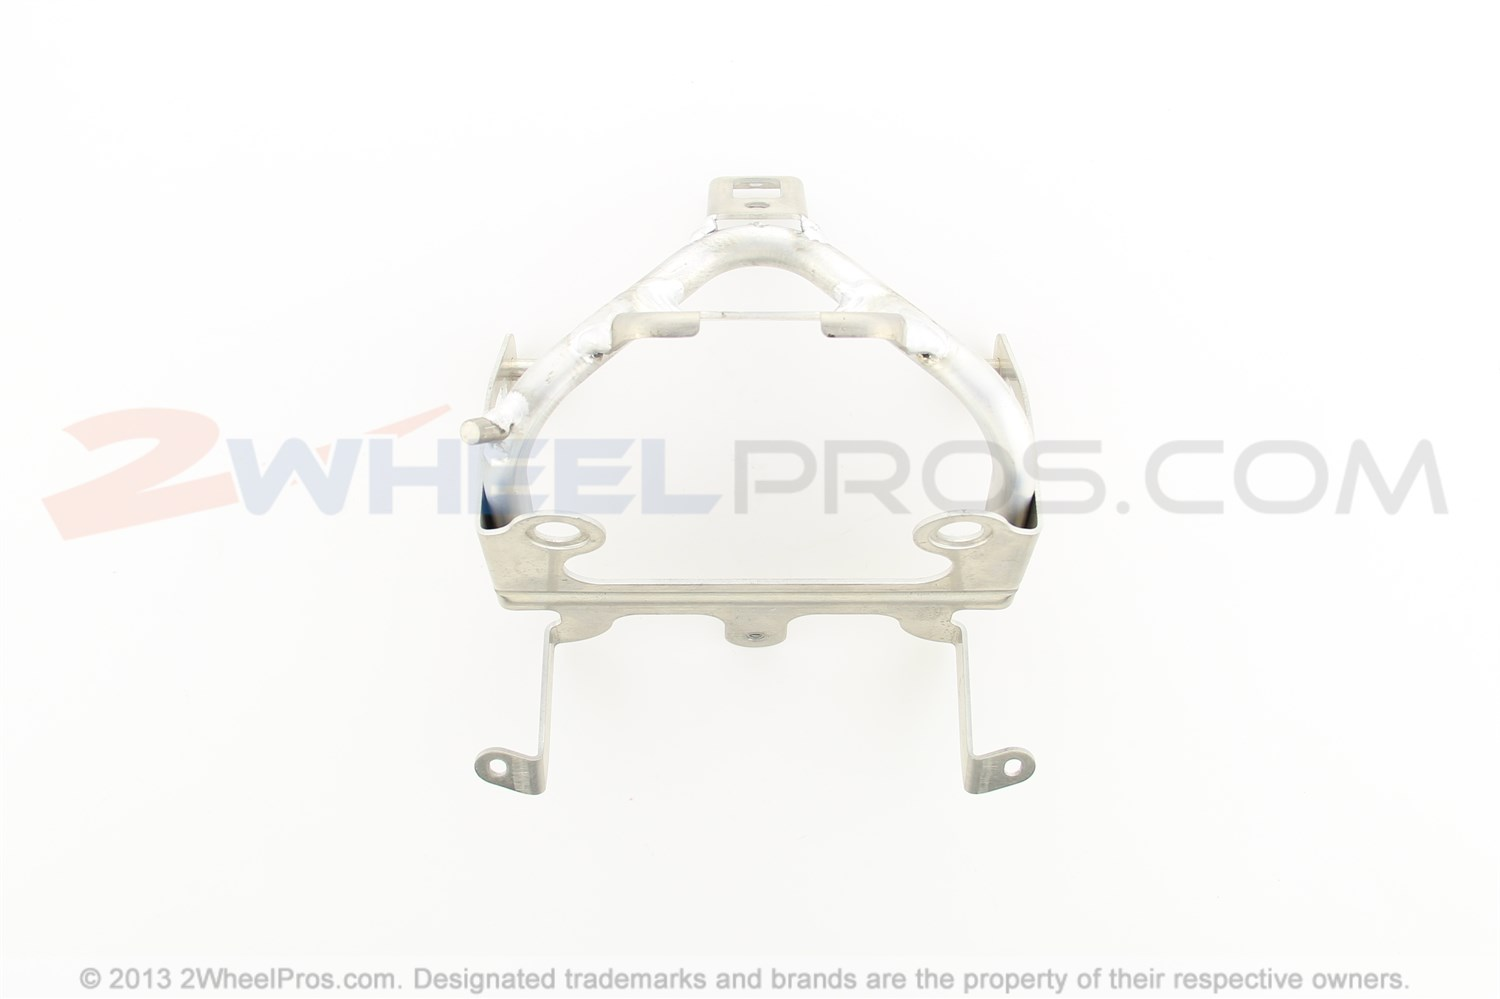 Handle Cover replacement parts for 2007 Suzuki KINGQUAD